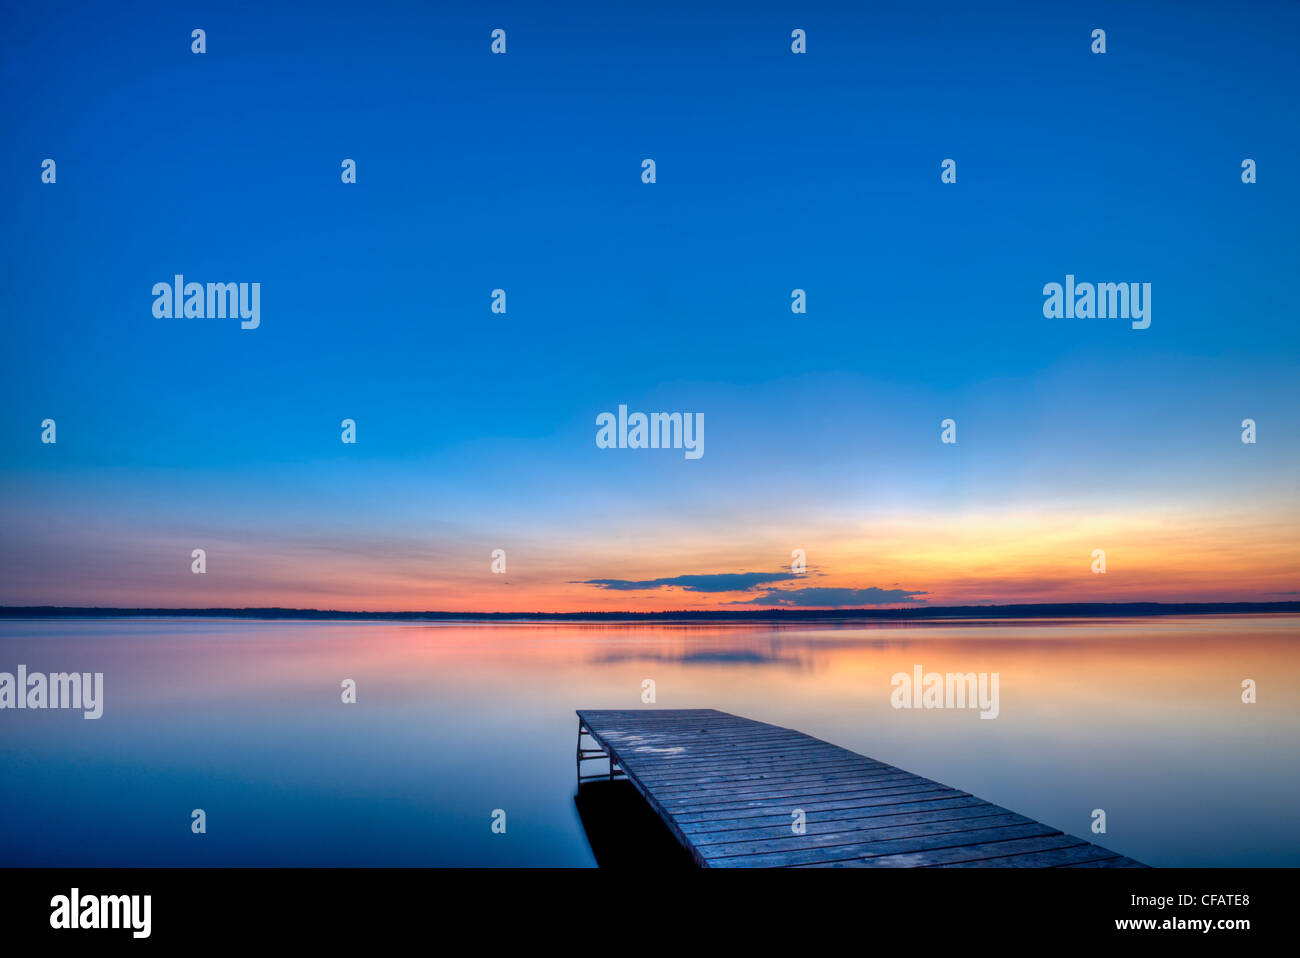 Sunset over a wooden wharf on Lake Audy, Riding Mountain National Park, Manitoba, Canada - Stock Image